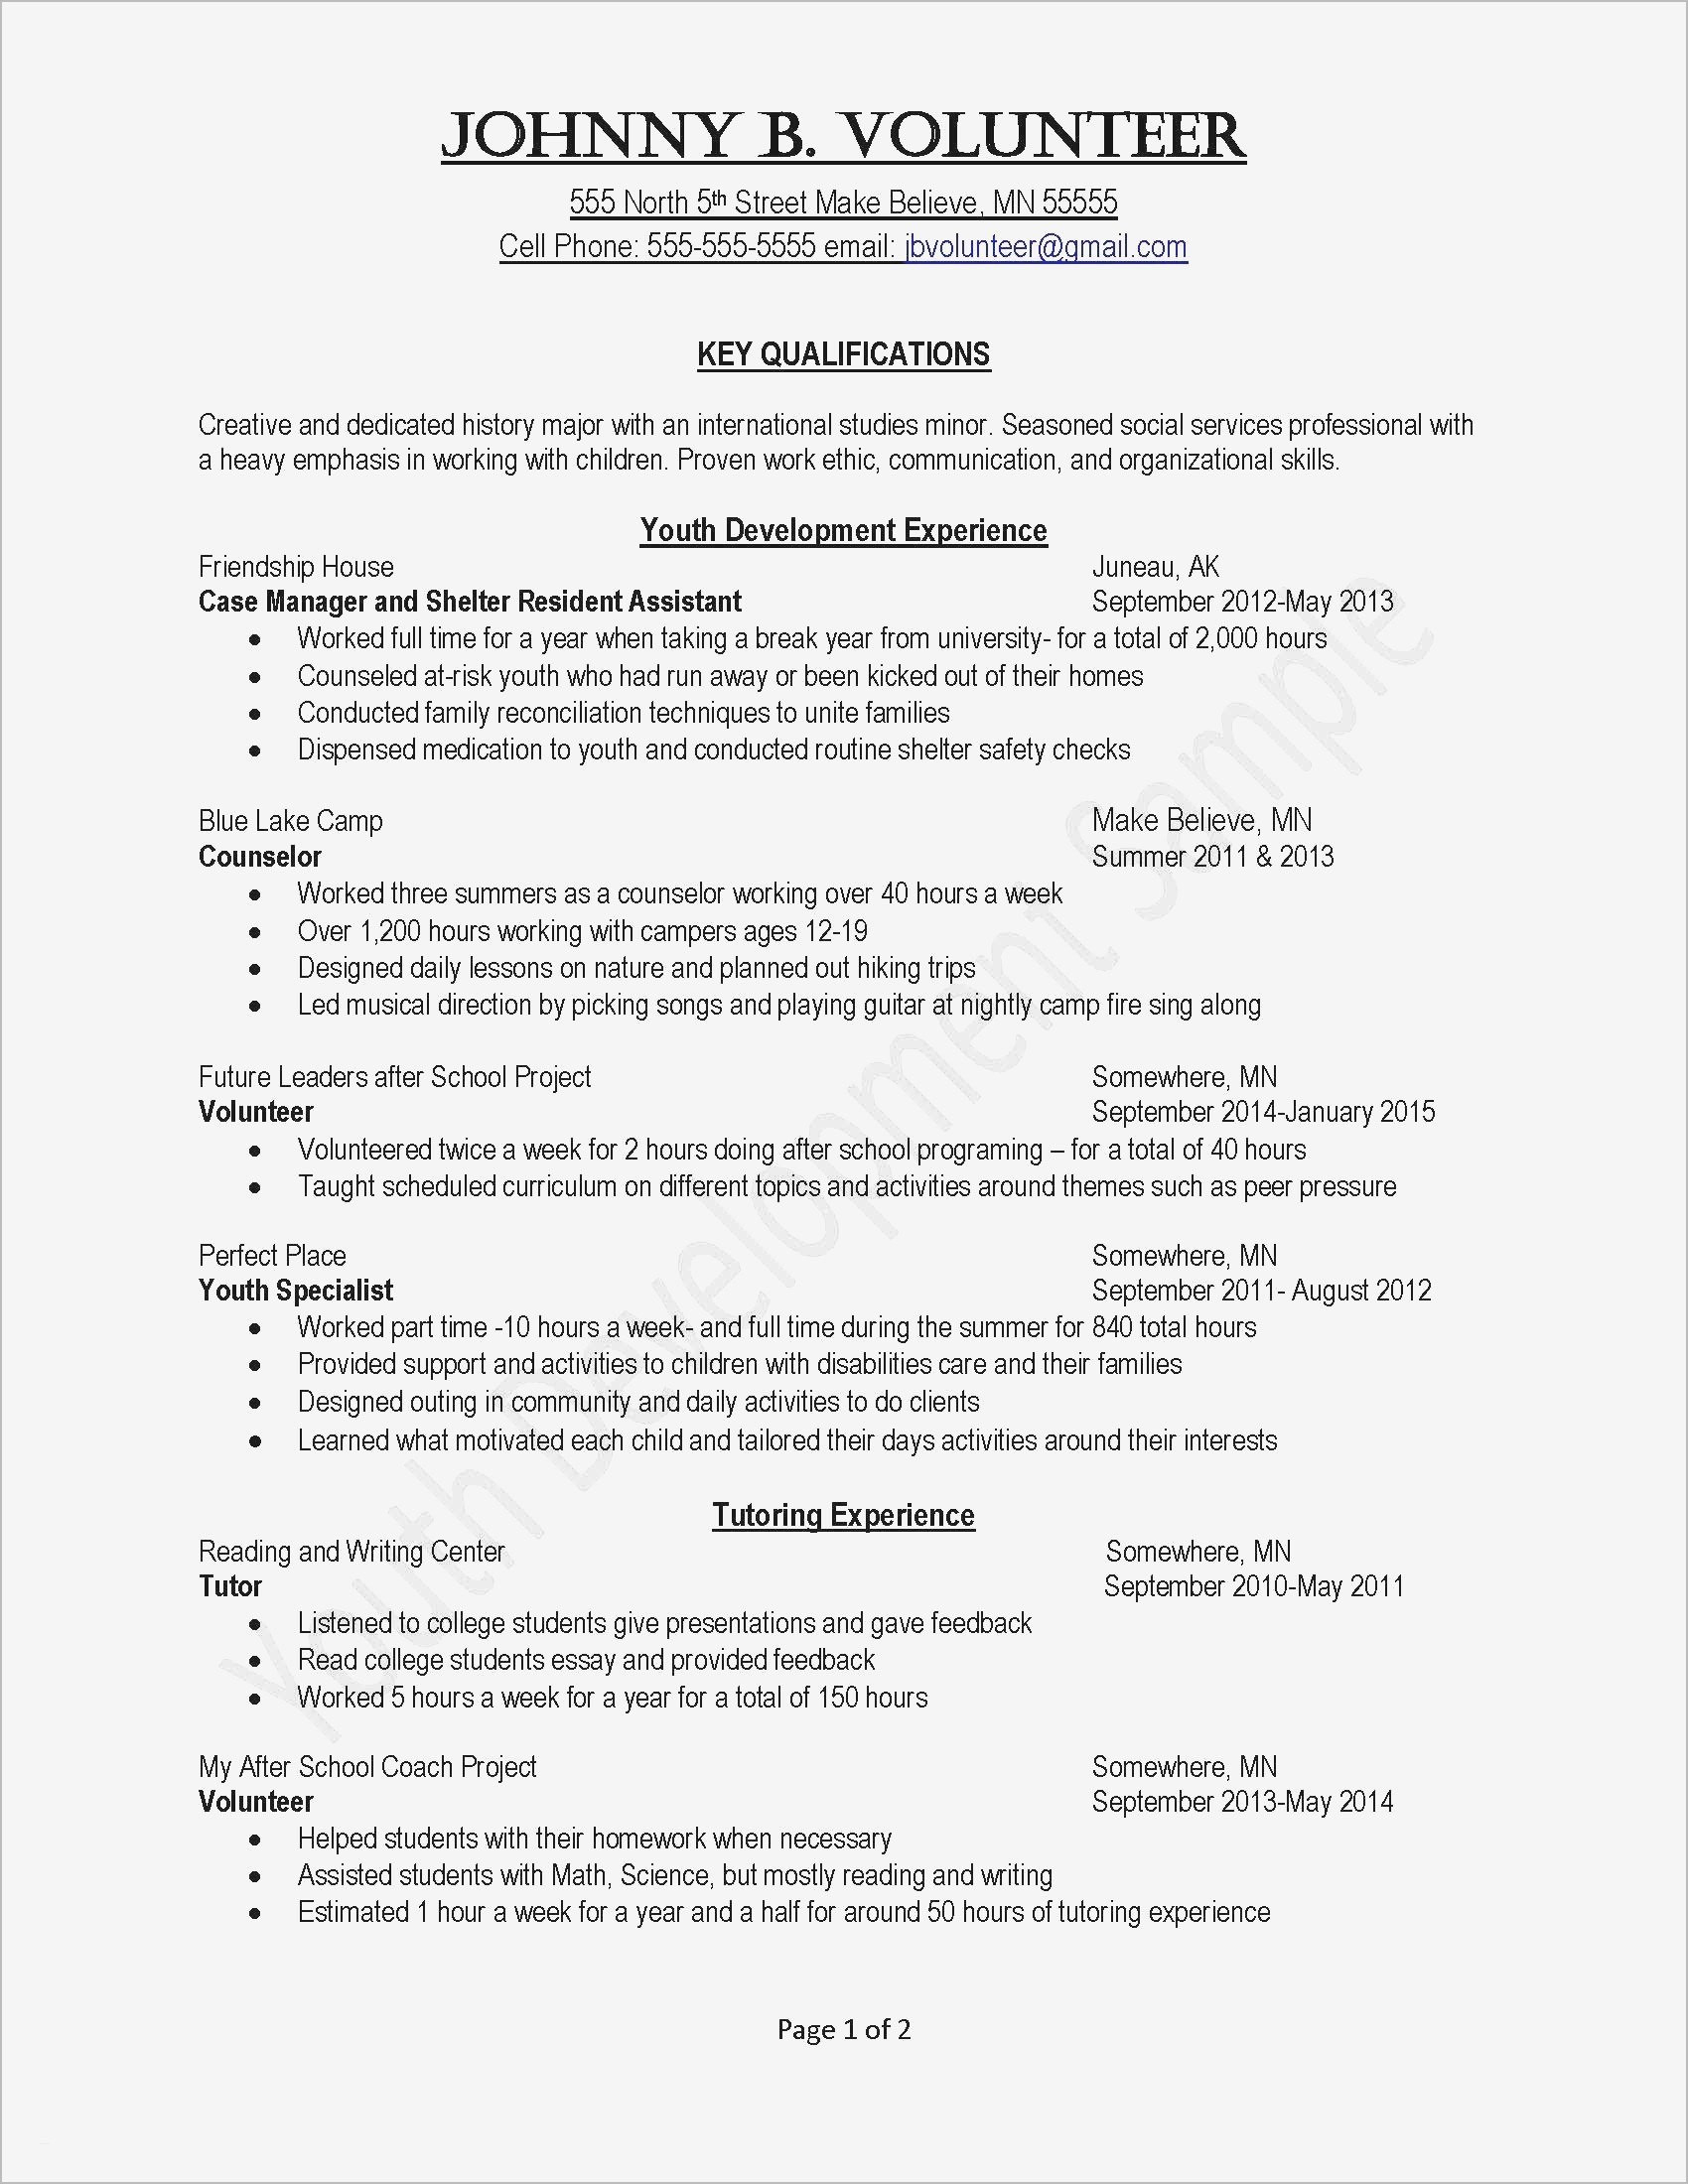 Resume Cover Letter Template - Activities Resume Template Valid Job Fer Letter Template Us Copy Od